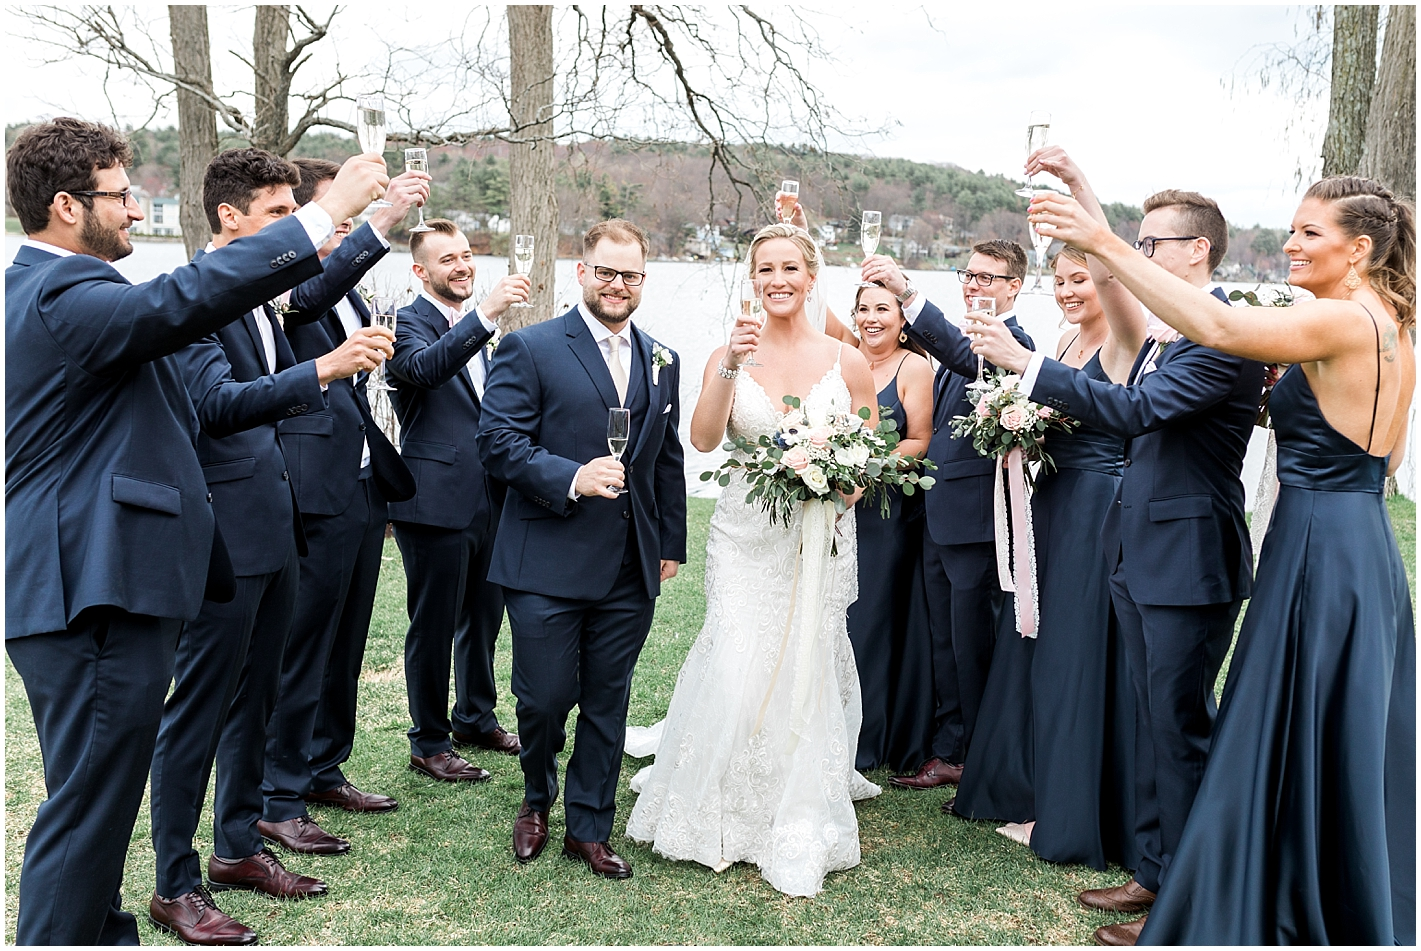 Fun and unique Wedding Party Portraits by Alyssa Parker Photography